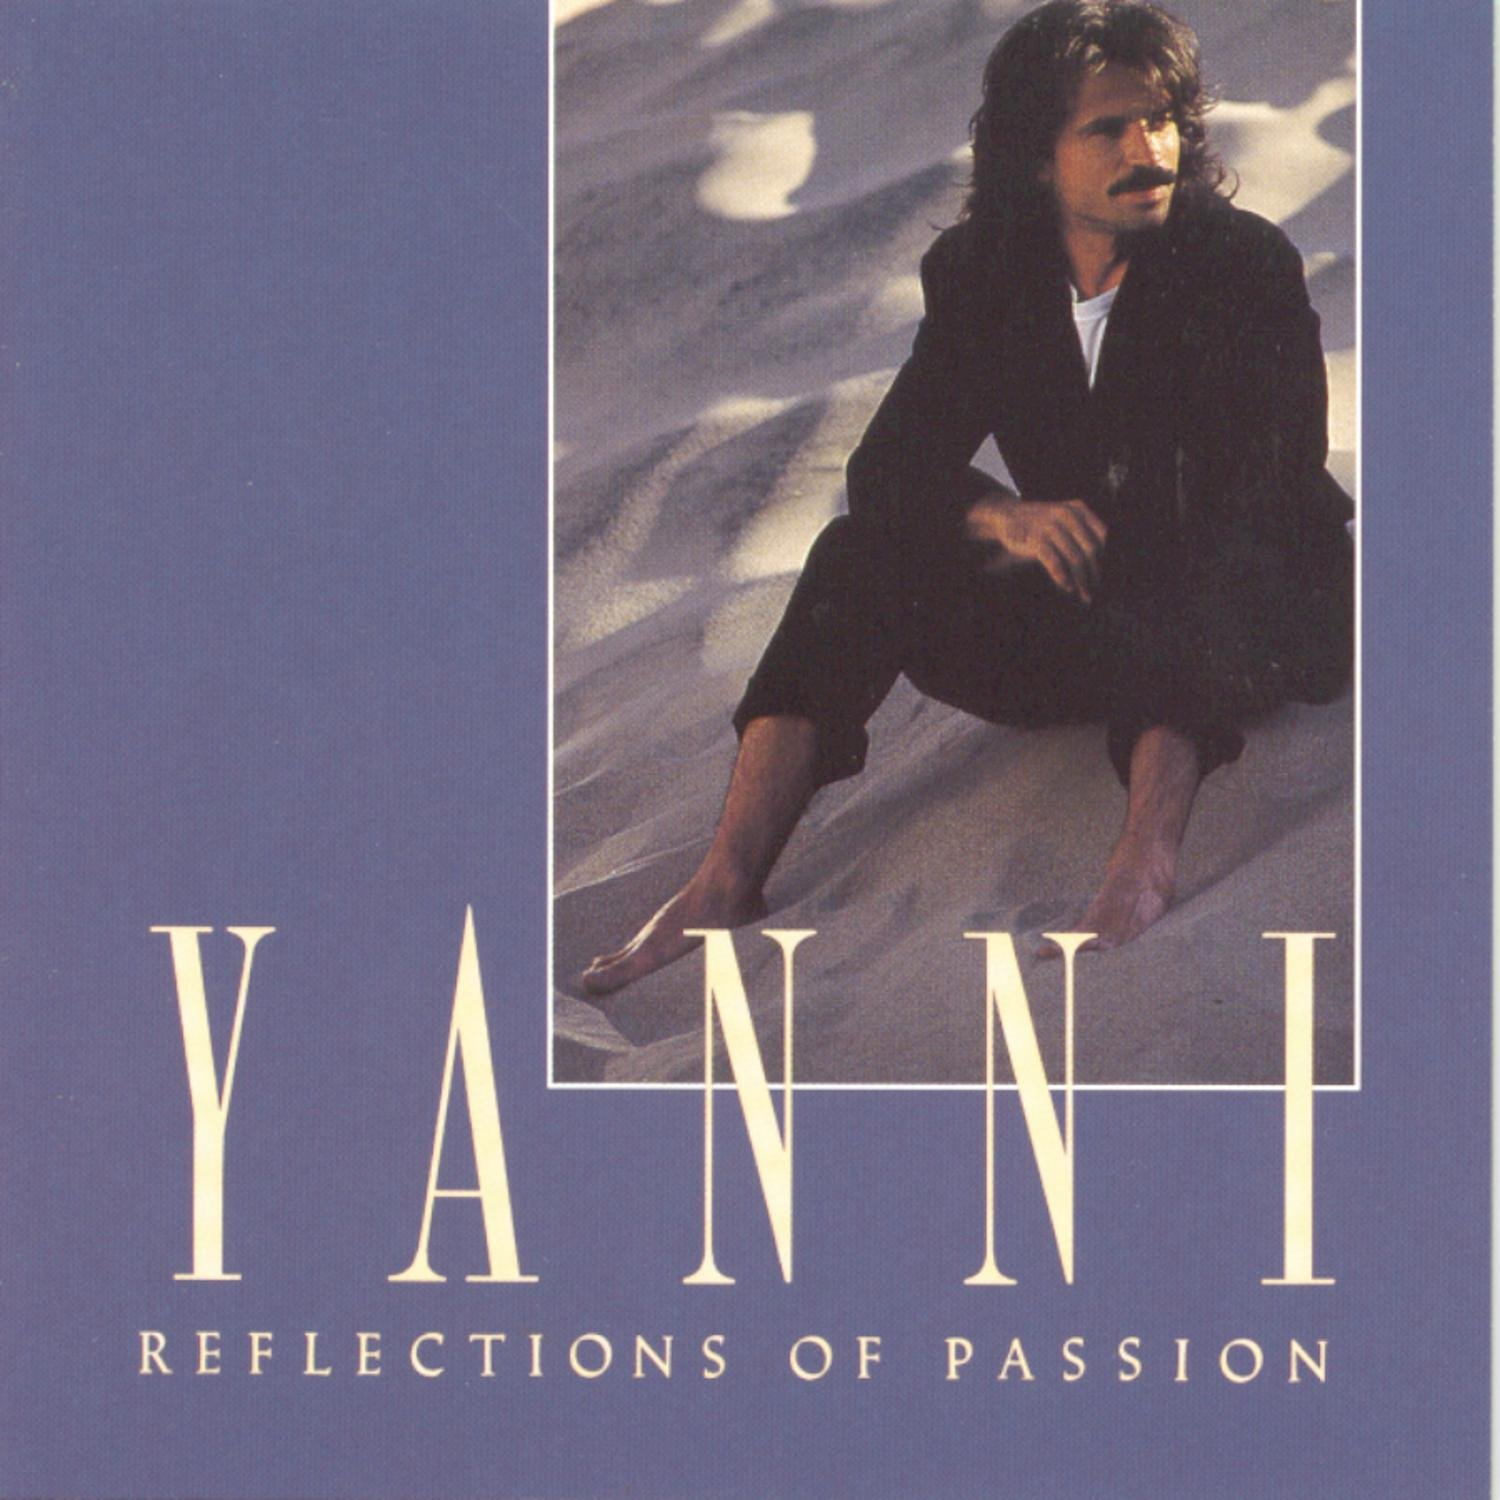 Yanni - Reflections Of Passion (1990) [FLAC] Download